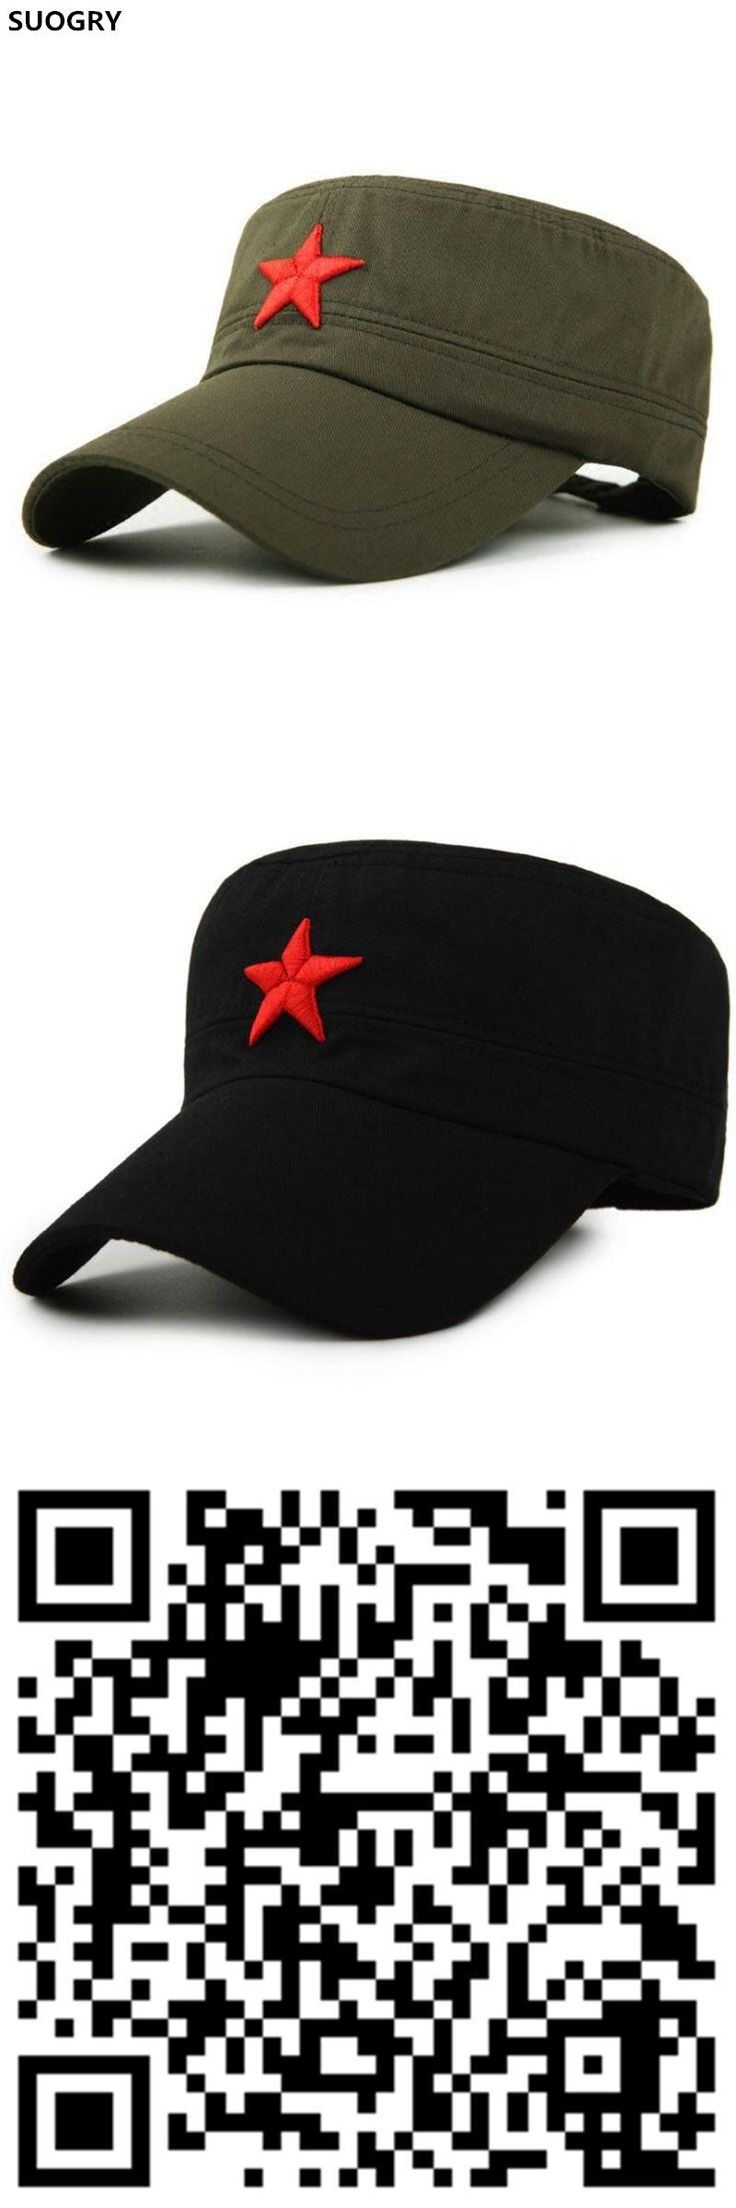 SUOGRY Military Cap Red Star Embroidery Cap Military Hat Army Green Flat Hats for Men Women Vintage Bone Male Female Army Sun Ha #MilitaryHatsForWomen